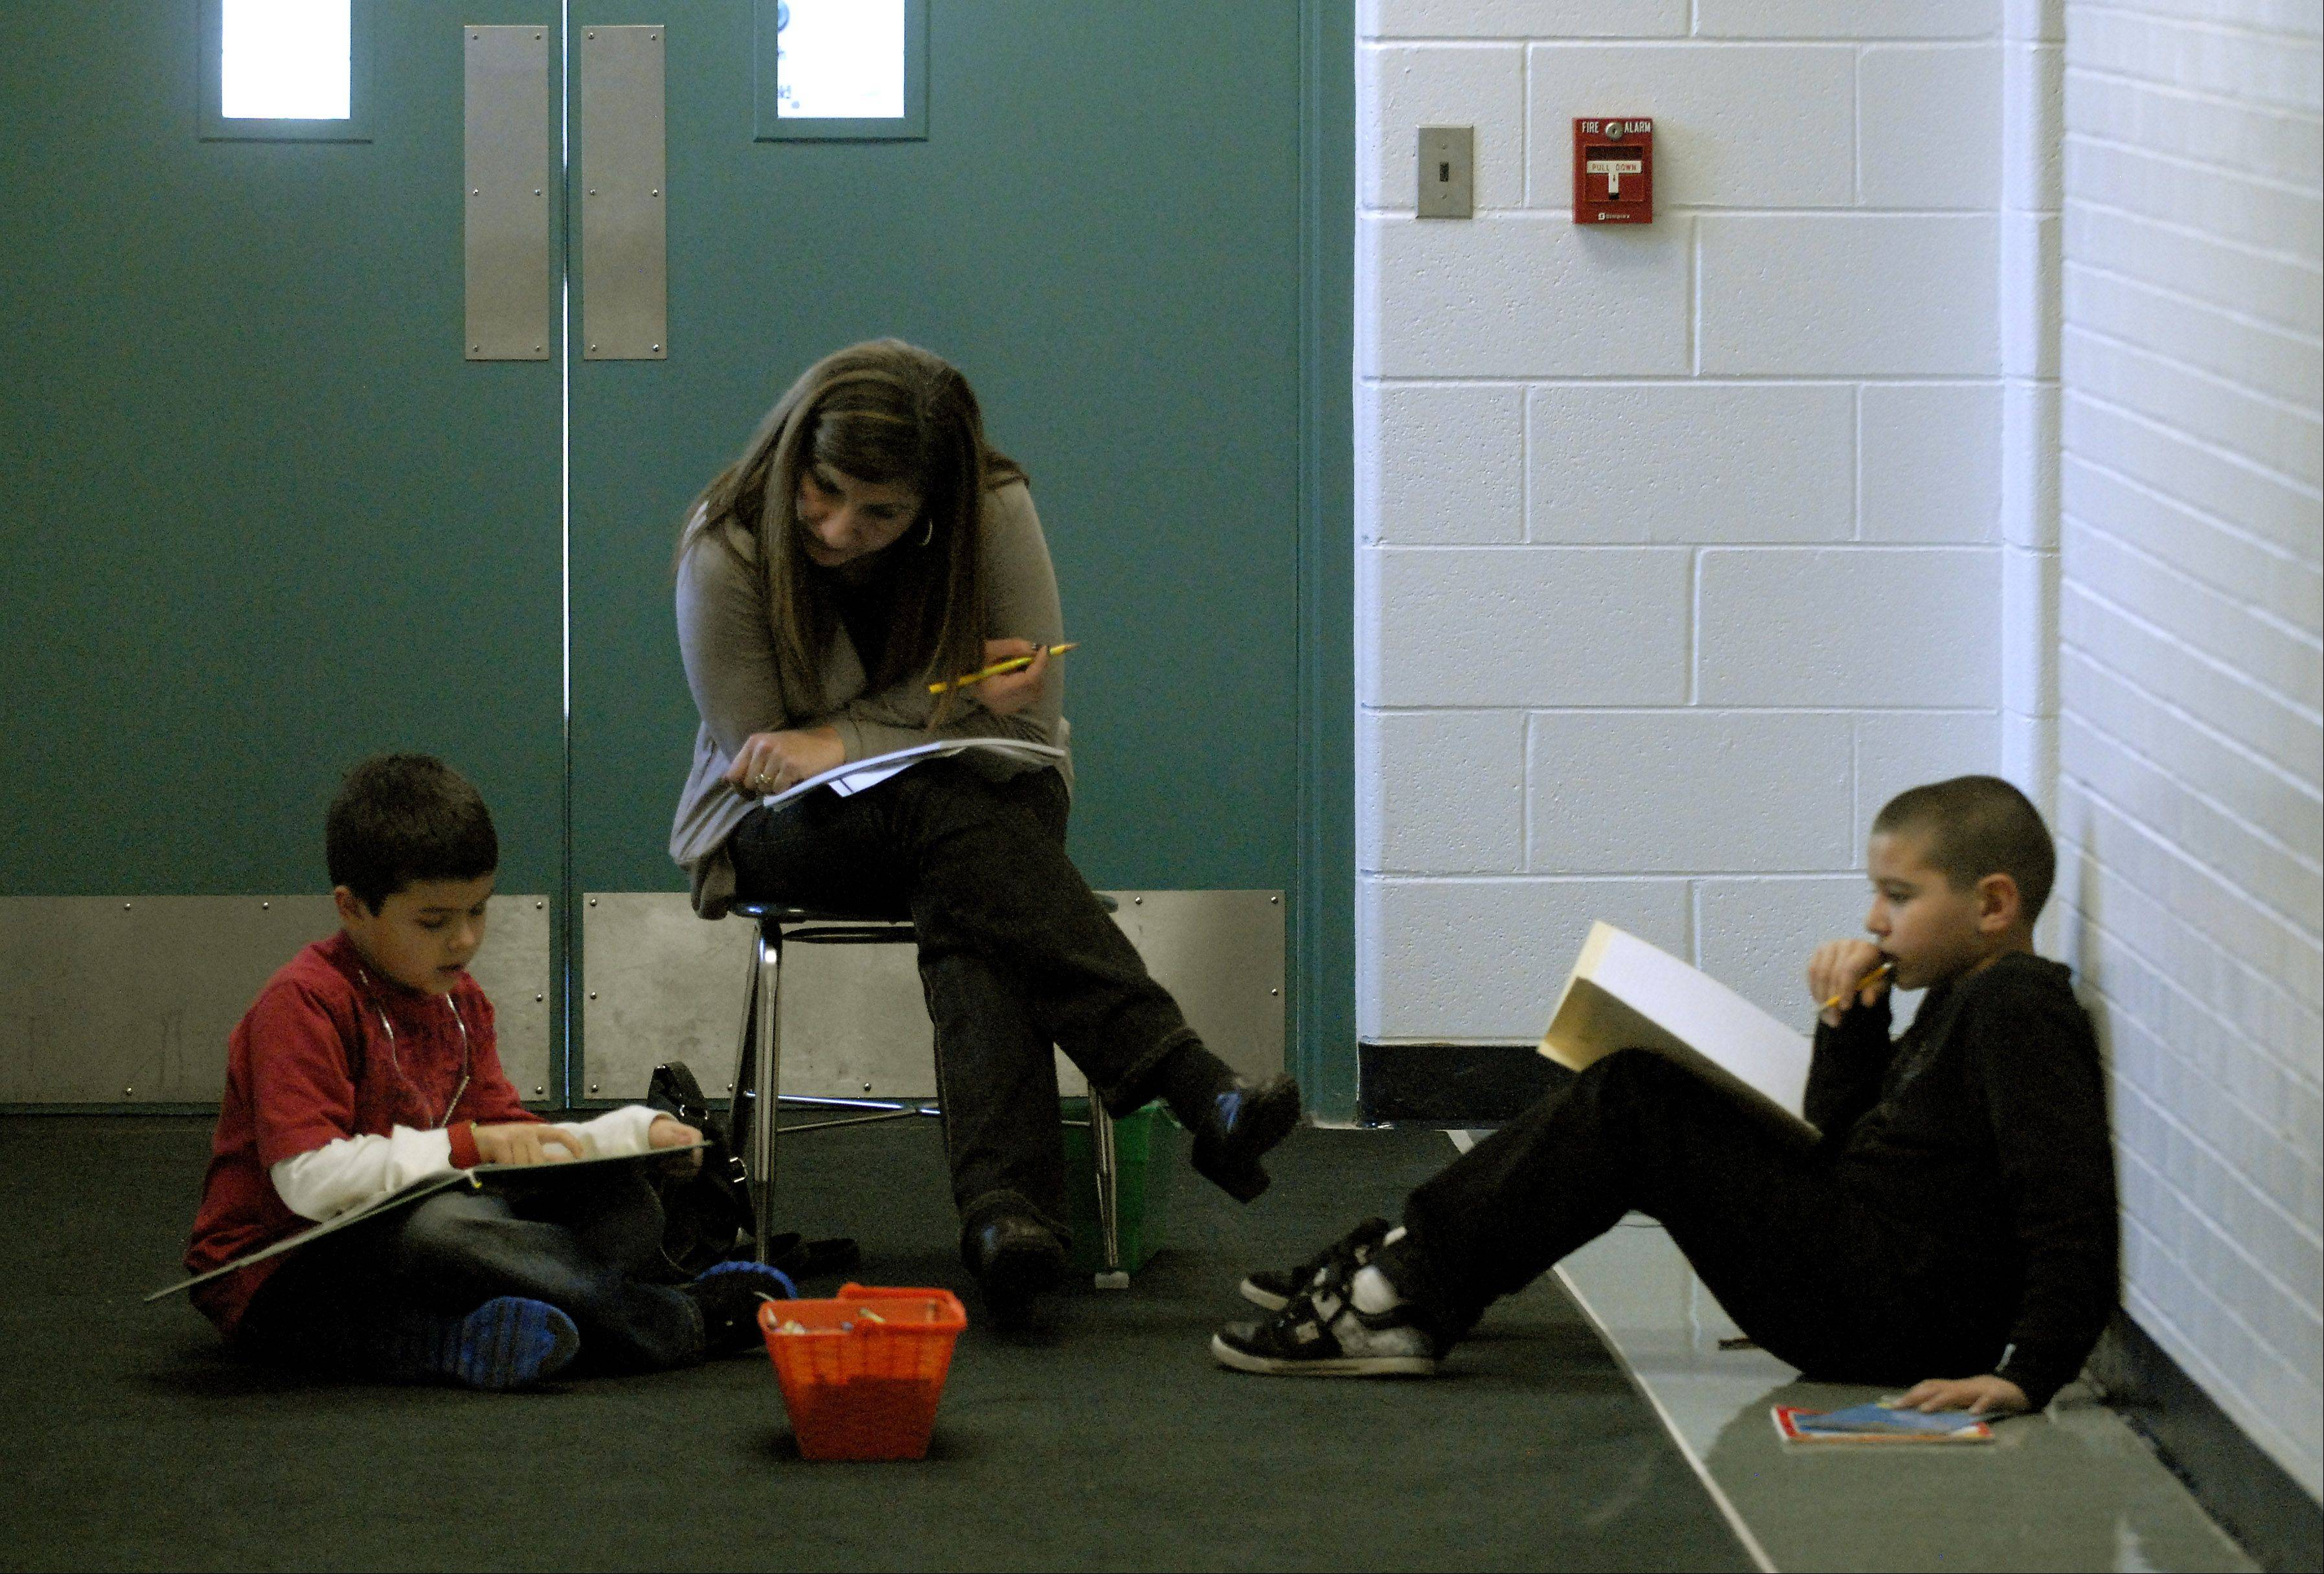 A teacher works with students in the hallway at Robert Frost Elementary School in Mount Prospect. Elk Grove Township Elementary District 59 school board this week voted to build four new classrooms at the school to alleviate overcrowding.